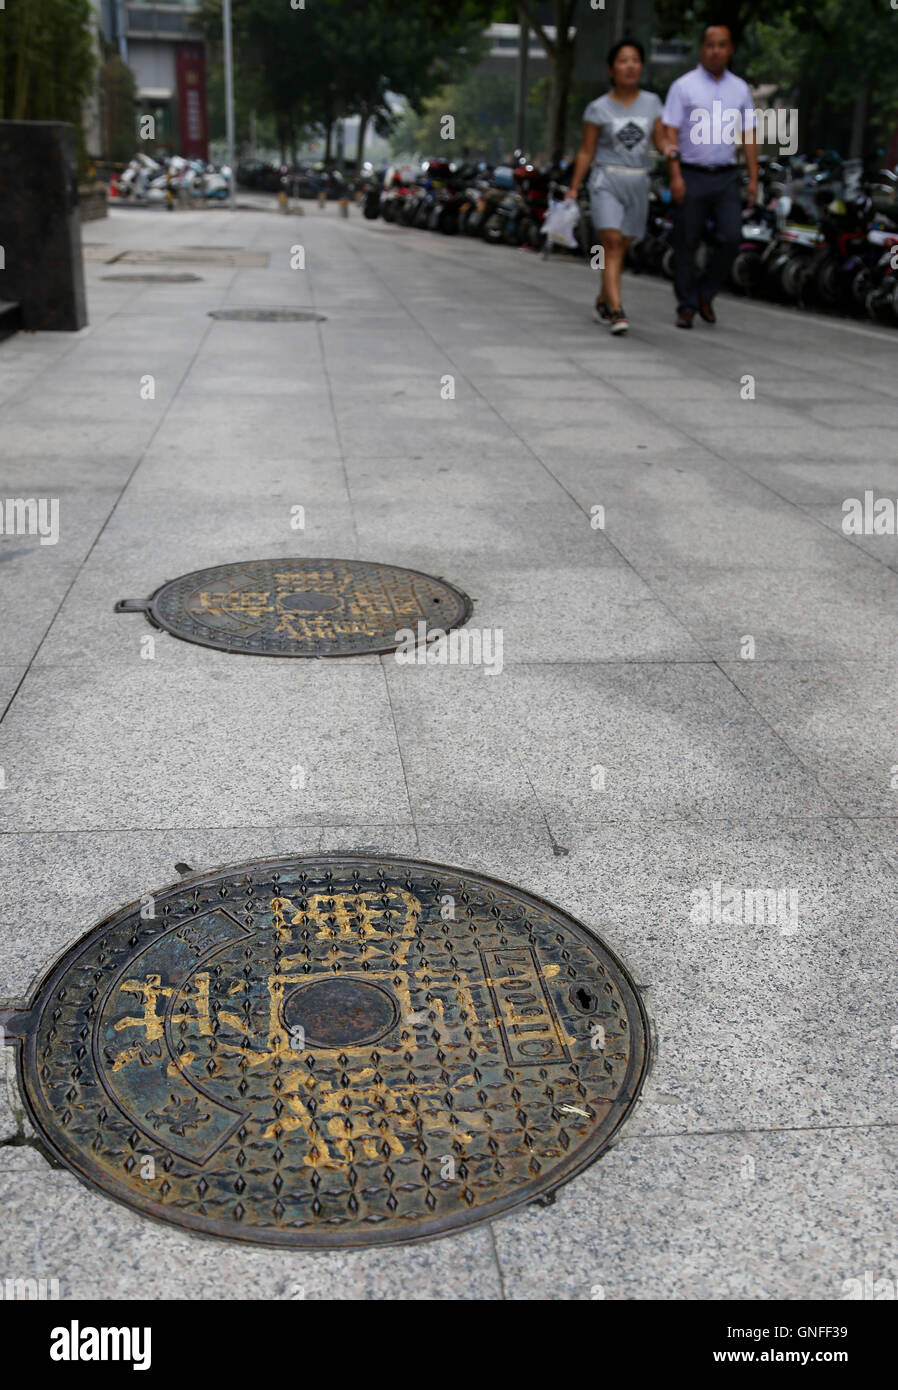 Painted Manhole Covers Stock Photos & Painted Manhole Covers Stock ...